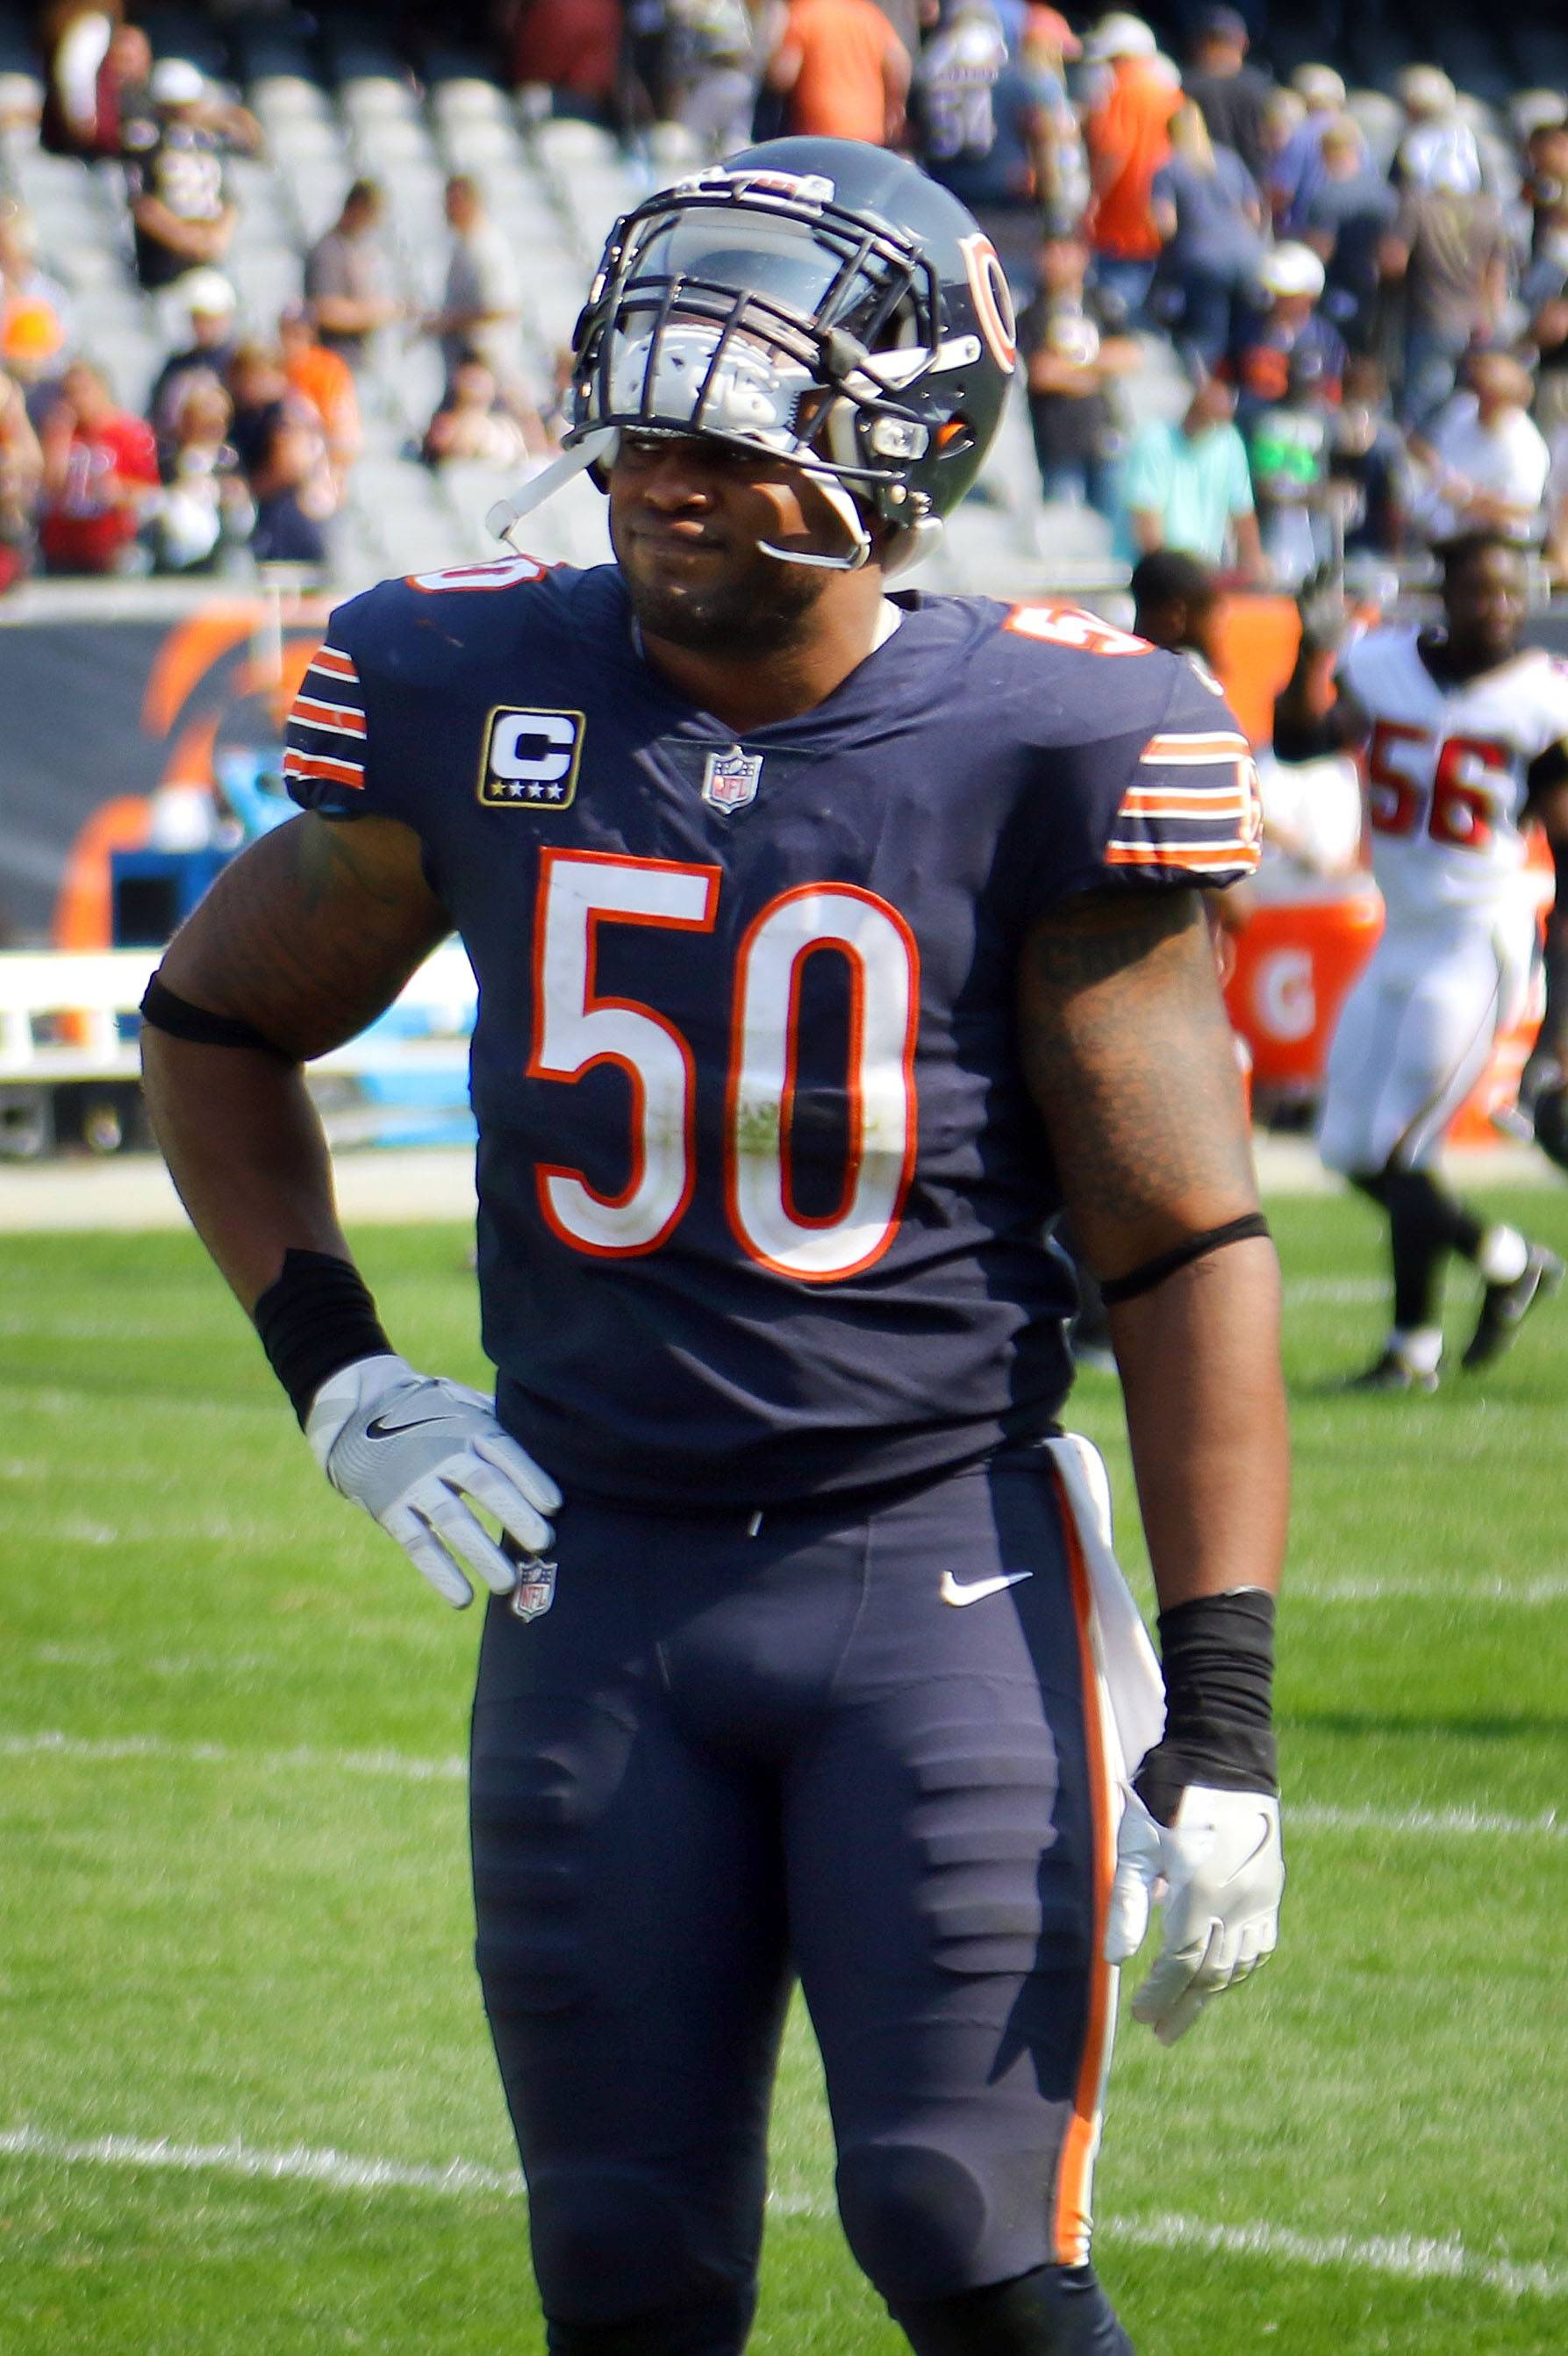 Chicago Bears inside linebacker Jerrell Freeman, shown here after the Bears lost Sunday to the Atlanta Falcons, was placed on injured reserve with a chest injury.